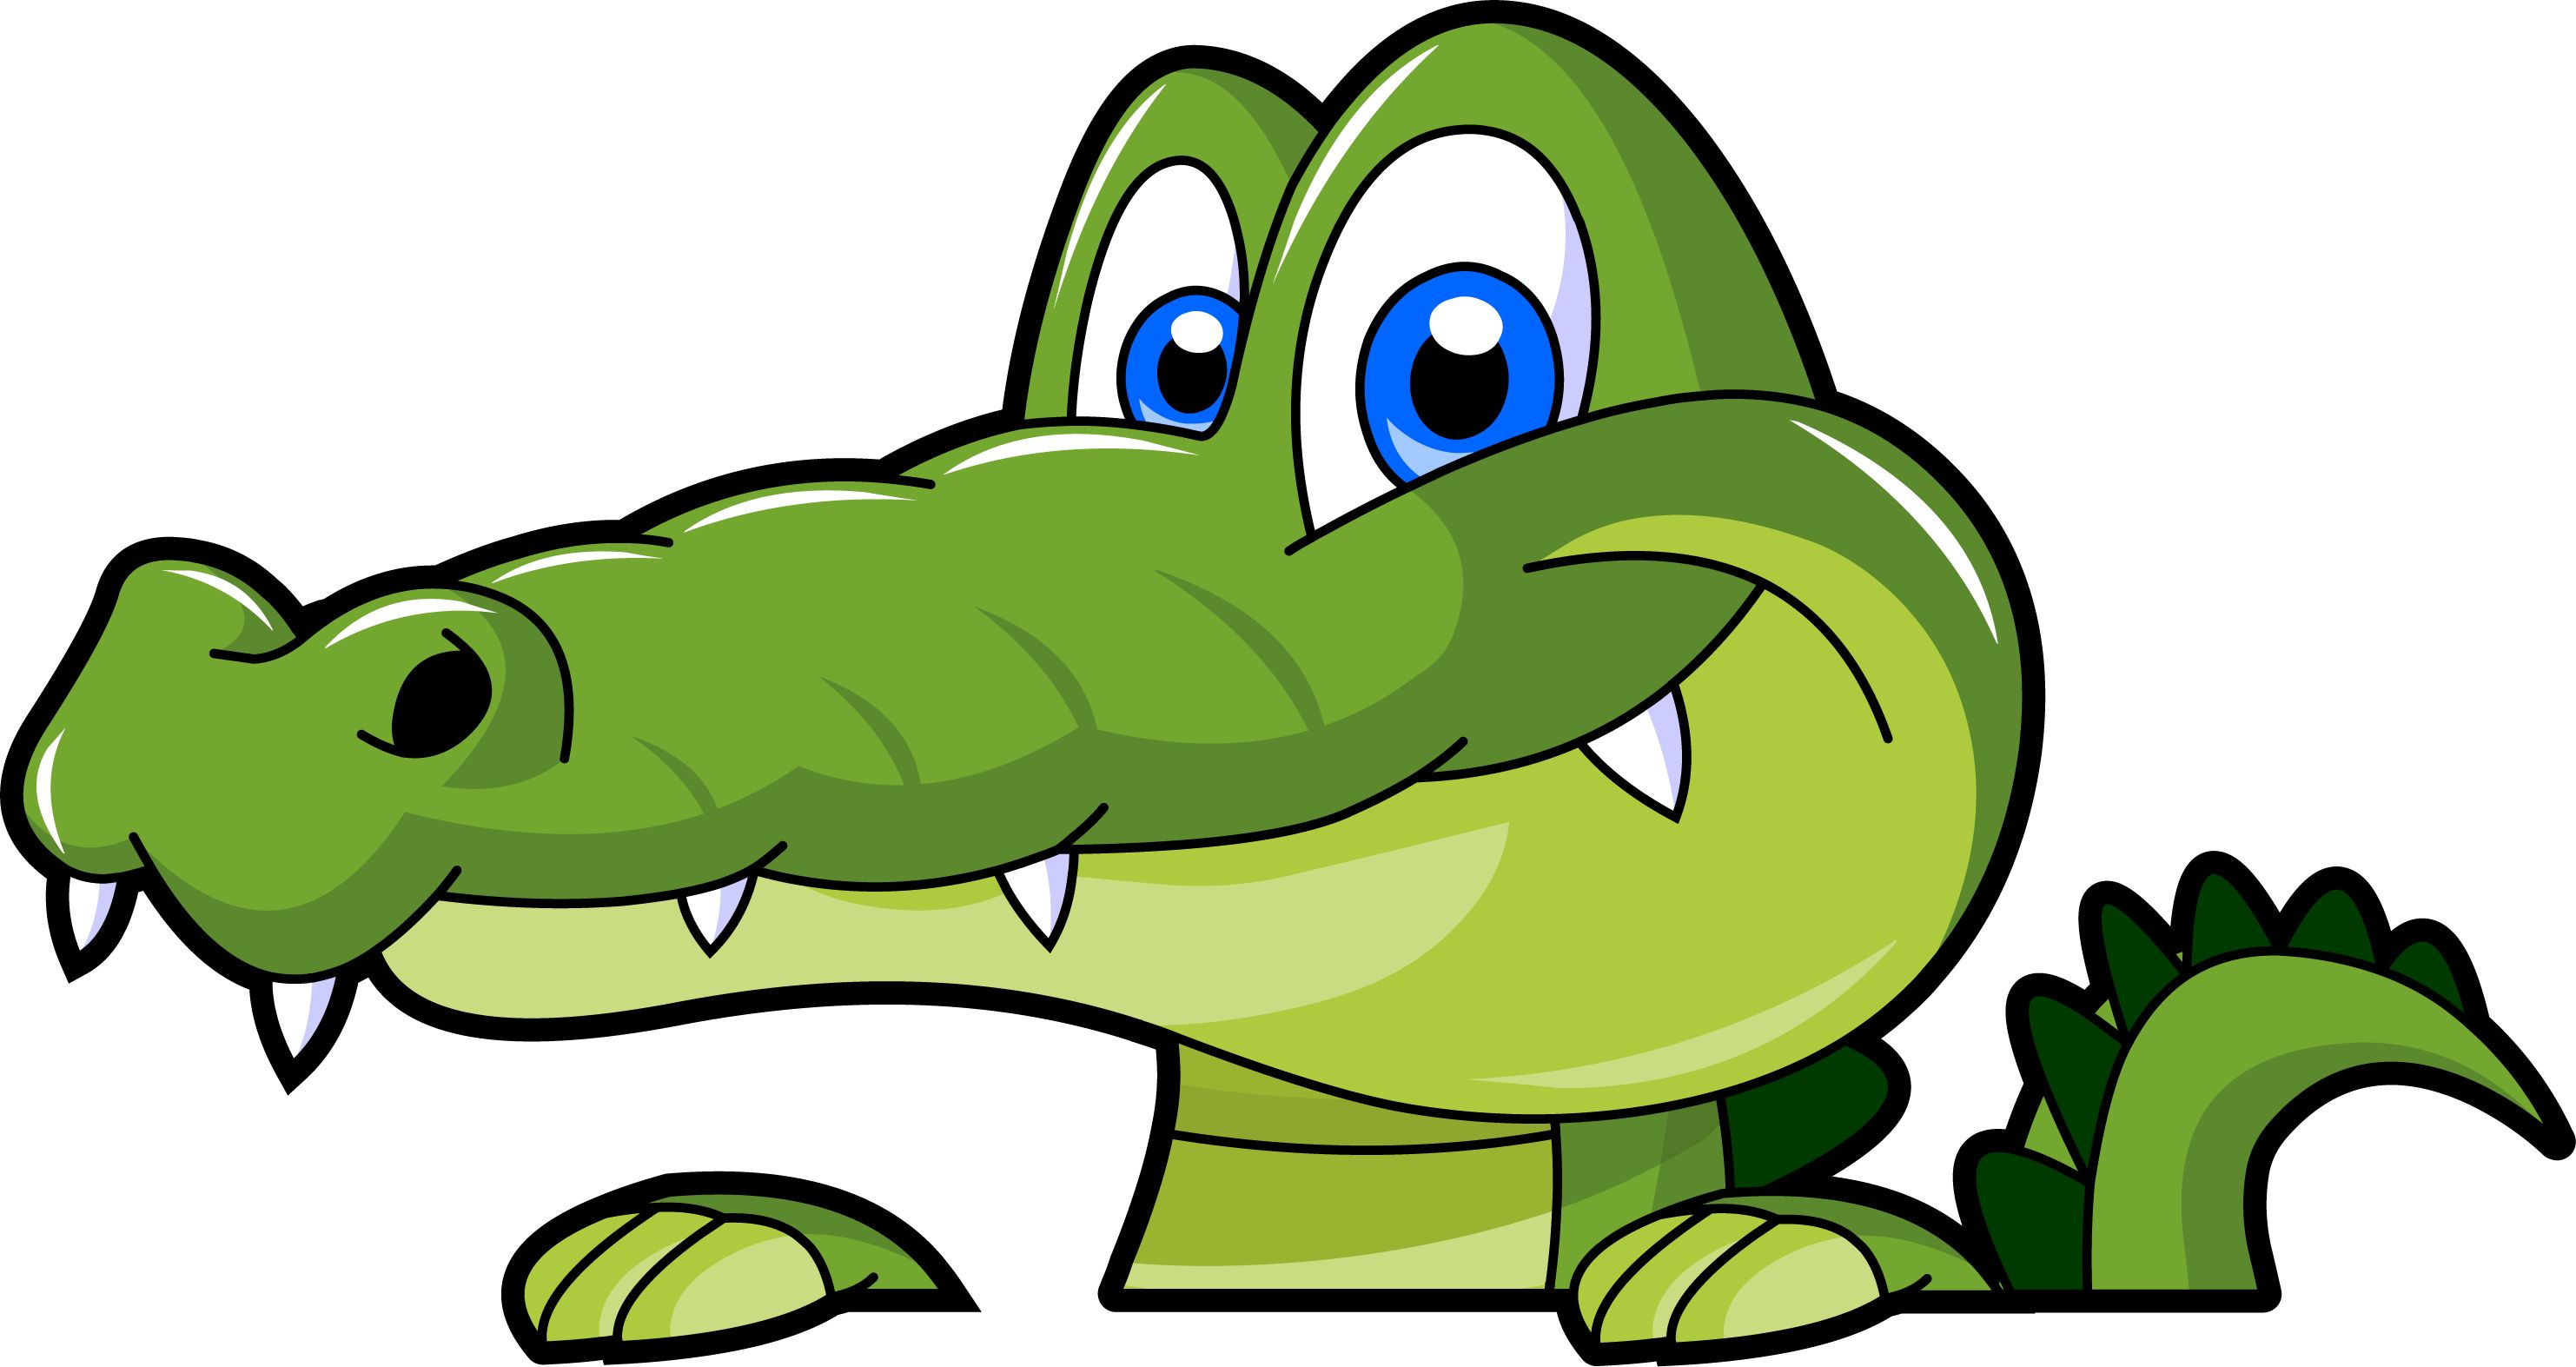 Alligator Clip Art. Swamp alligator cartoon .